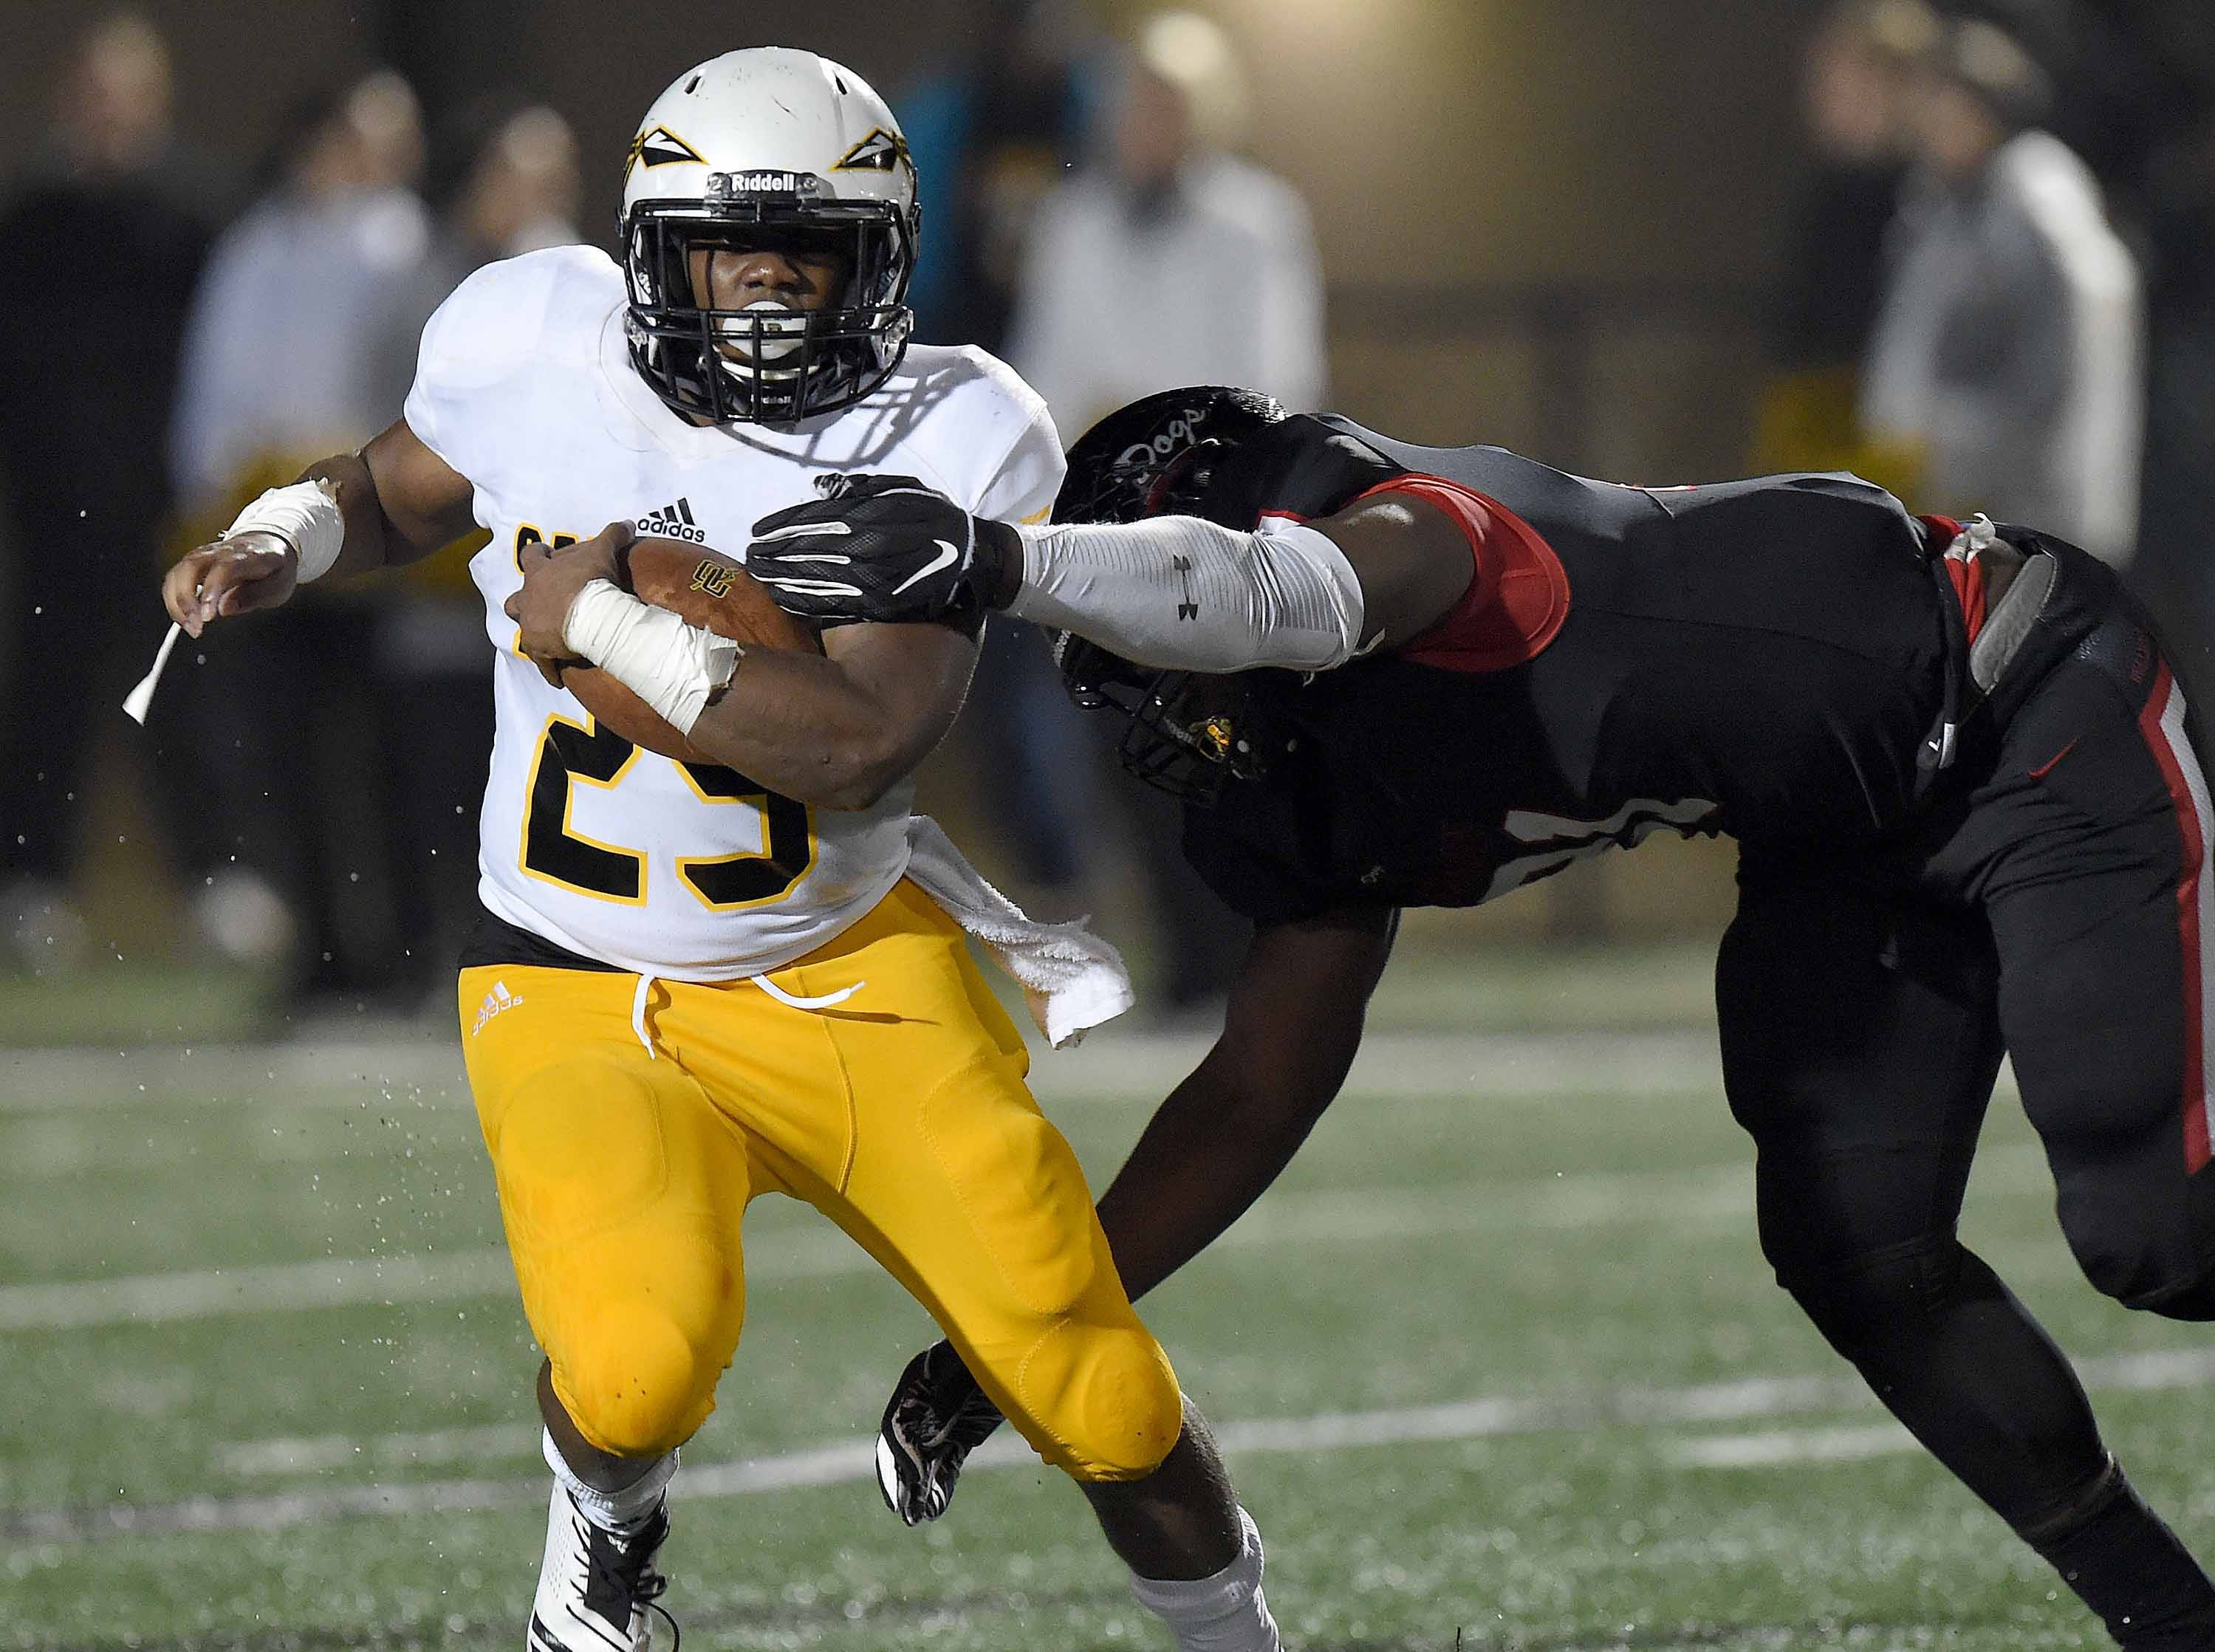 Oak Grov's Jarius Smith (25) runs against Brandon in the MHSAA Class 6A South State Championship on Friday, November 23, 2018, at Brandon High School in Brandon, Miss.